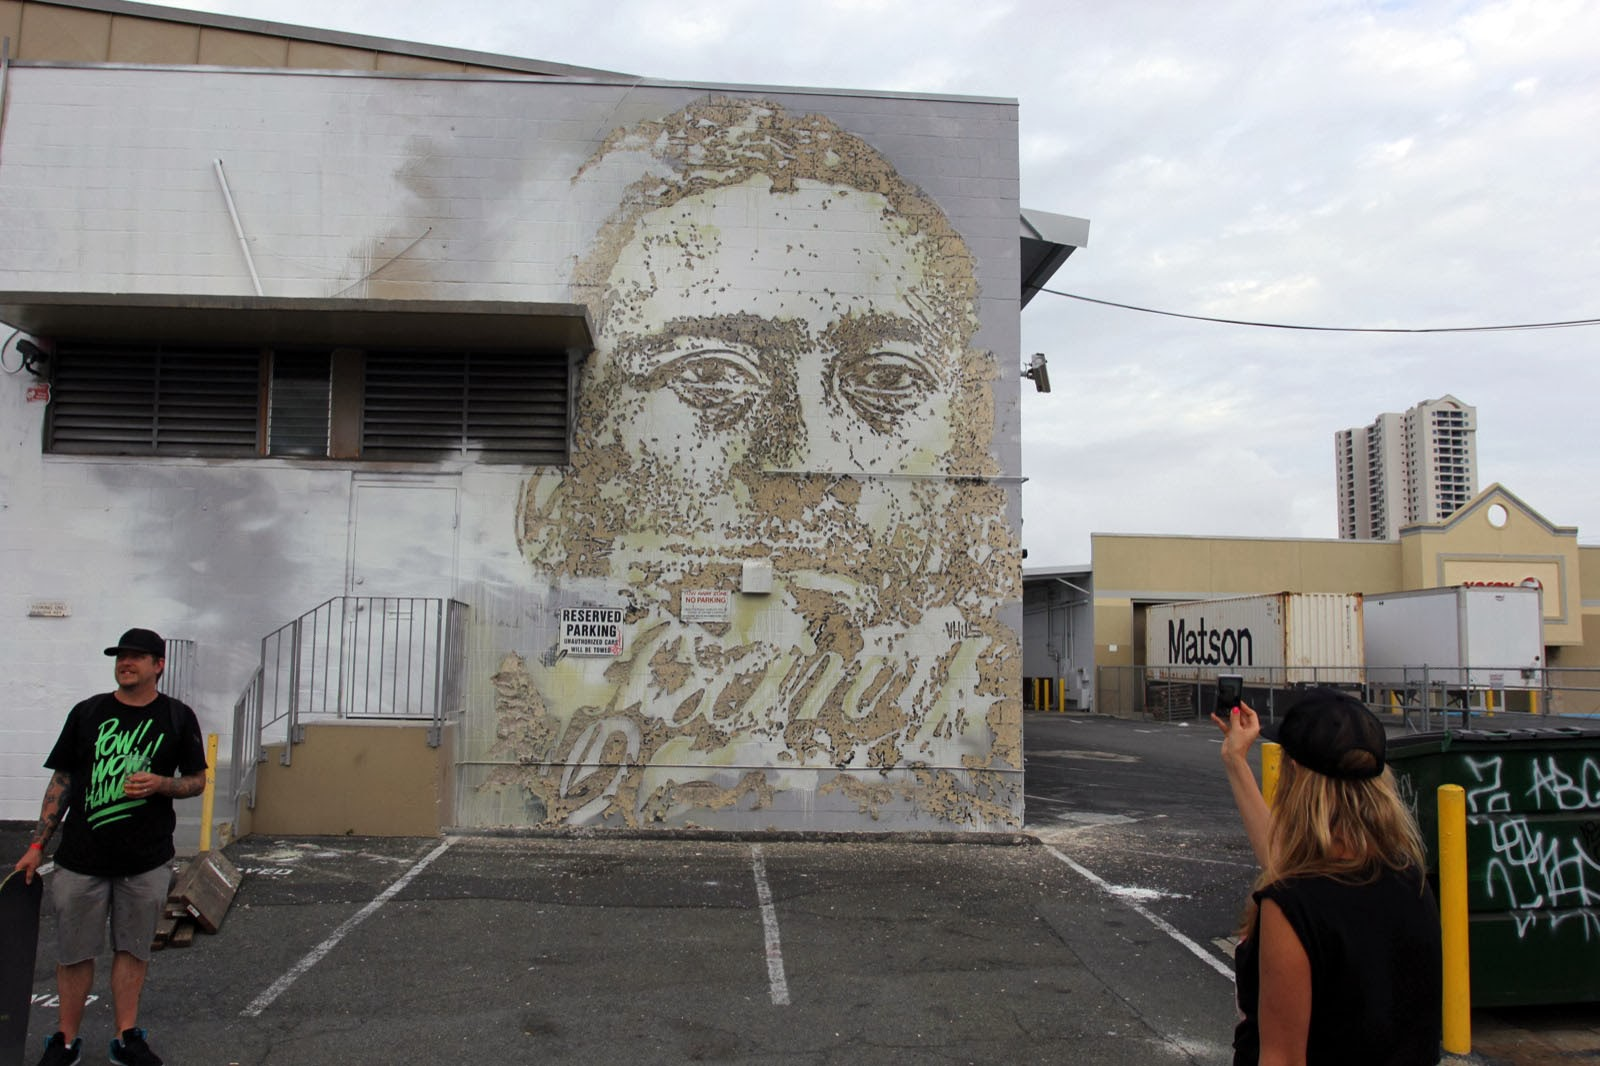 While we last heard from him last year in Turin, Italy, Portuguese street artist Vhils is now in Honolulu where he just wrapped up this new mural. 1